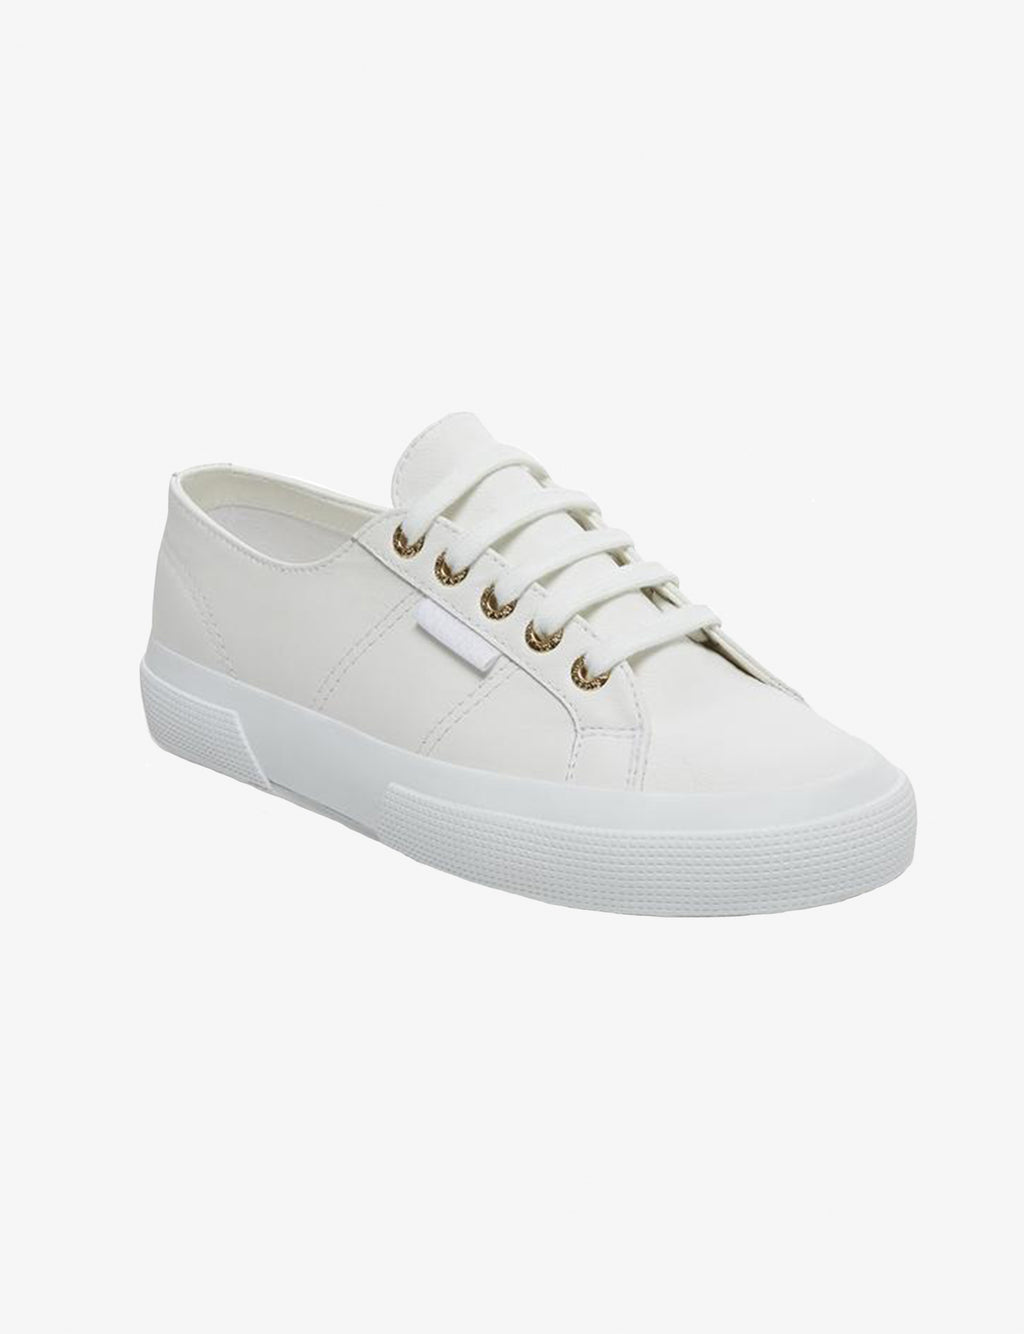 Superga 2750 Nappa Leather Classic Sneaker in White/Gold